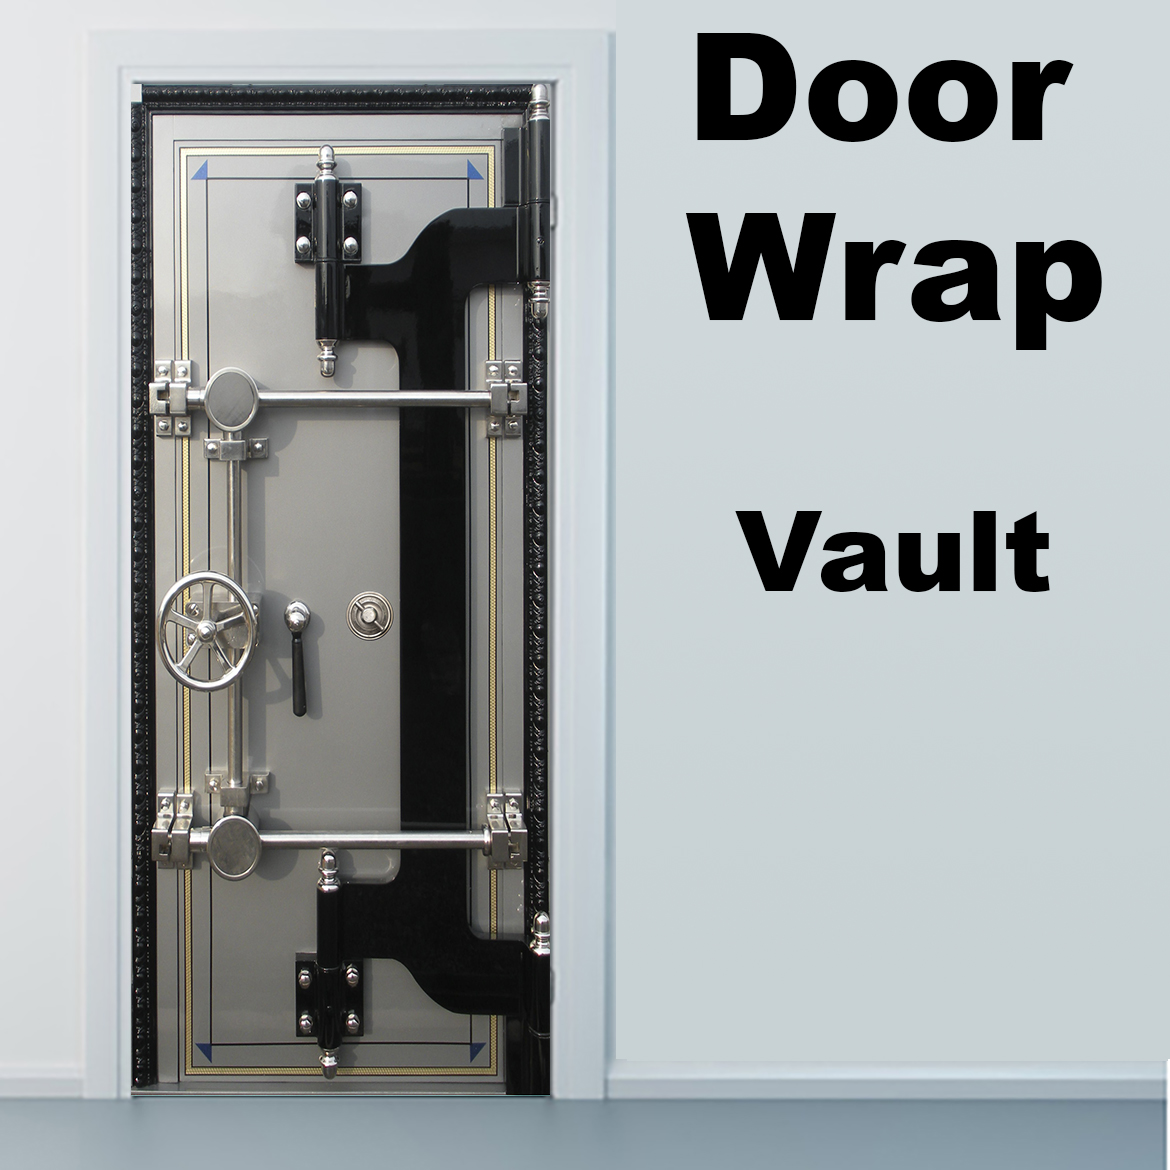 Superior Vault Door Wrap